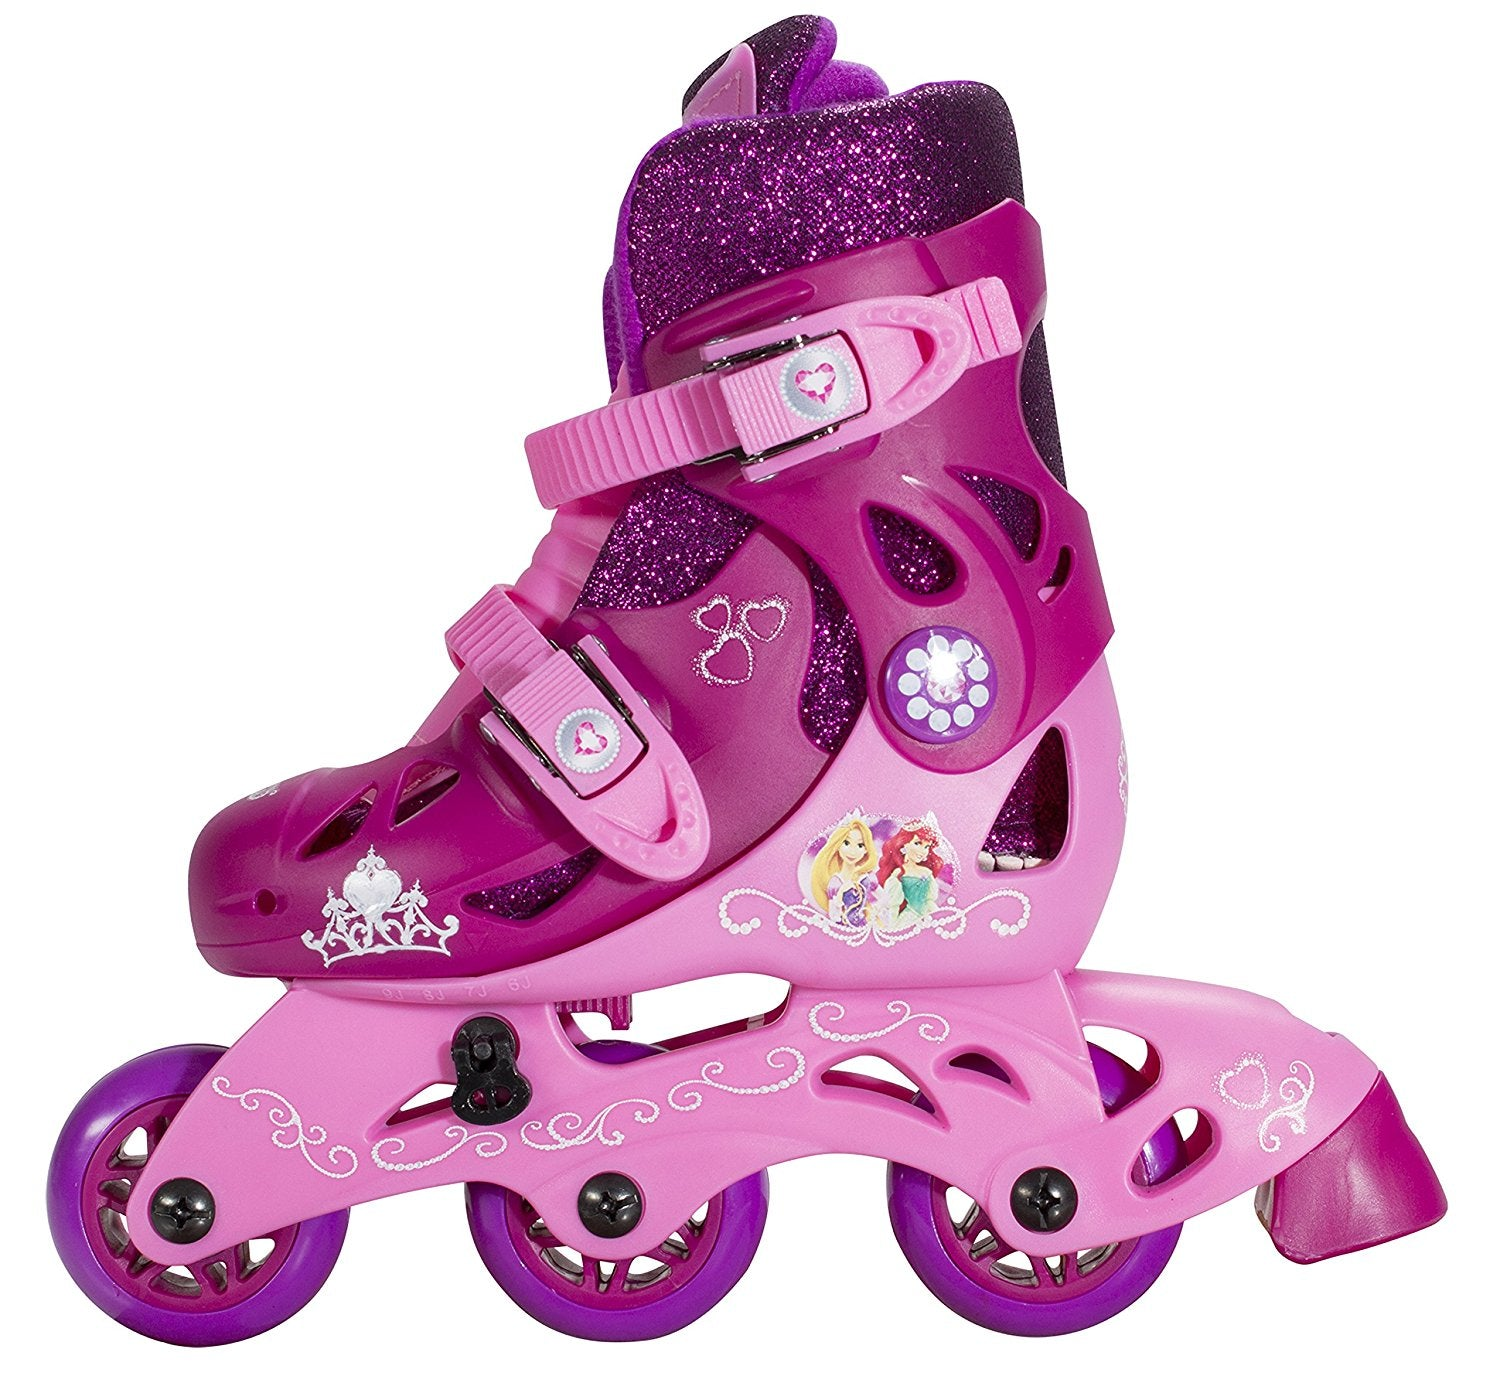 Disney Princess Adjustable 2-in-1 Glitter Trainer Skates